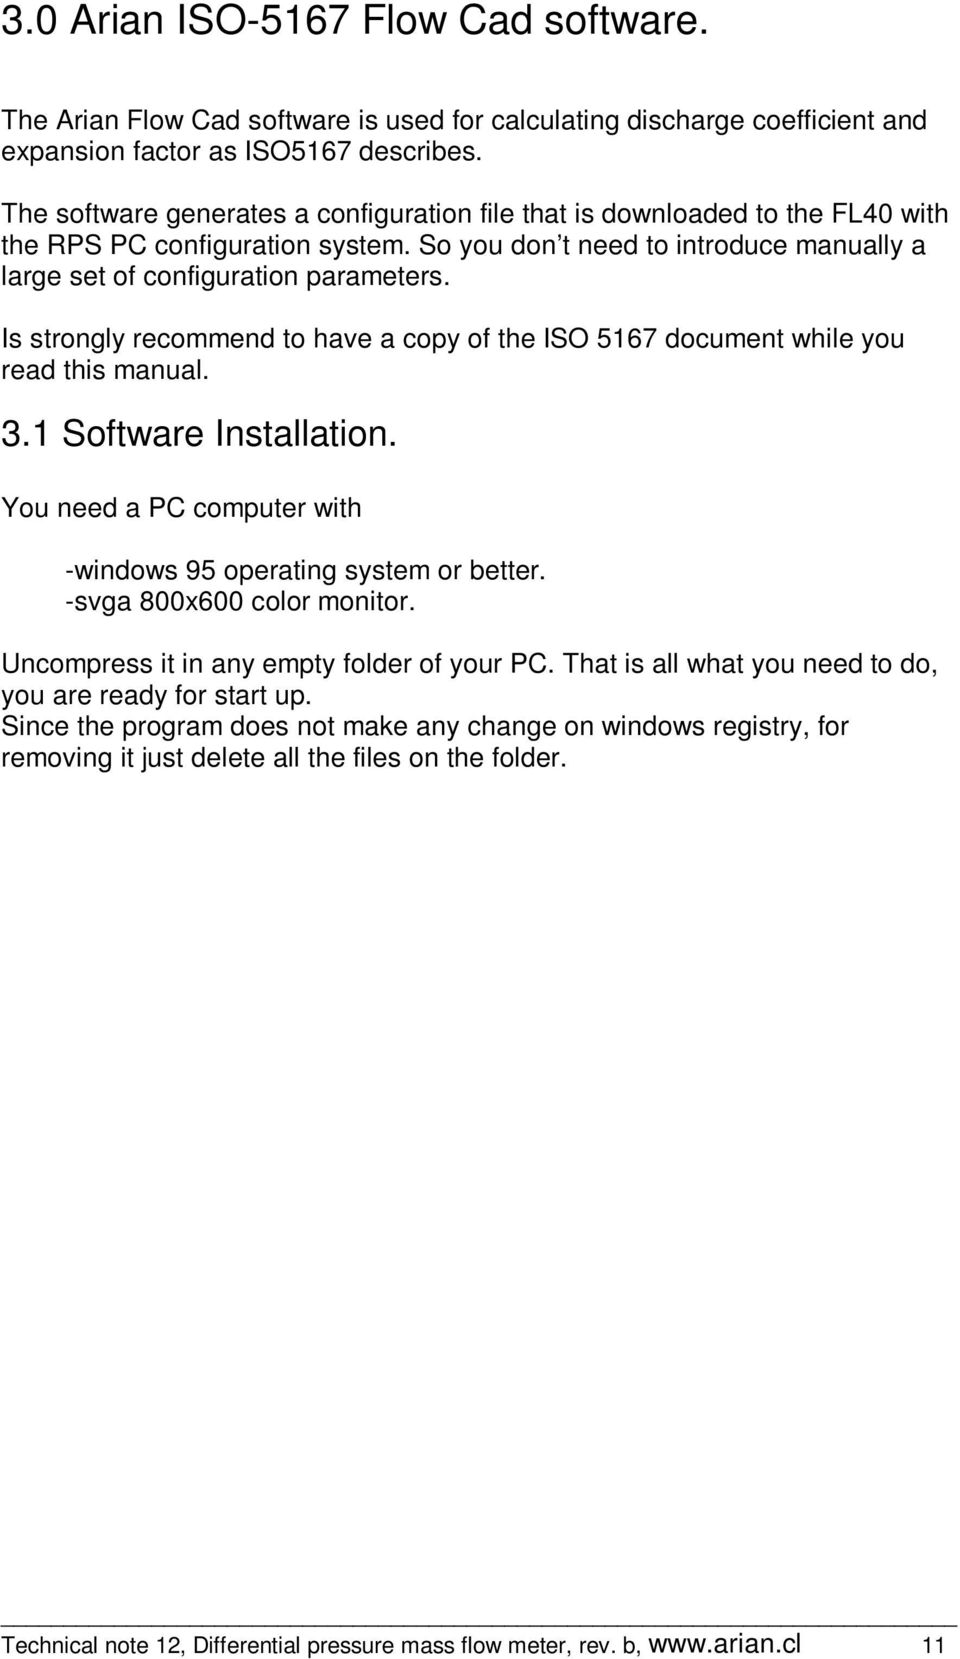 Is strongly recommend to have a copy of the ISO 567 document while you read this manual. 3. Software Installation. You need a PC computer with -windows 95 operating system or better.